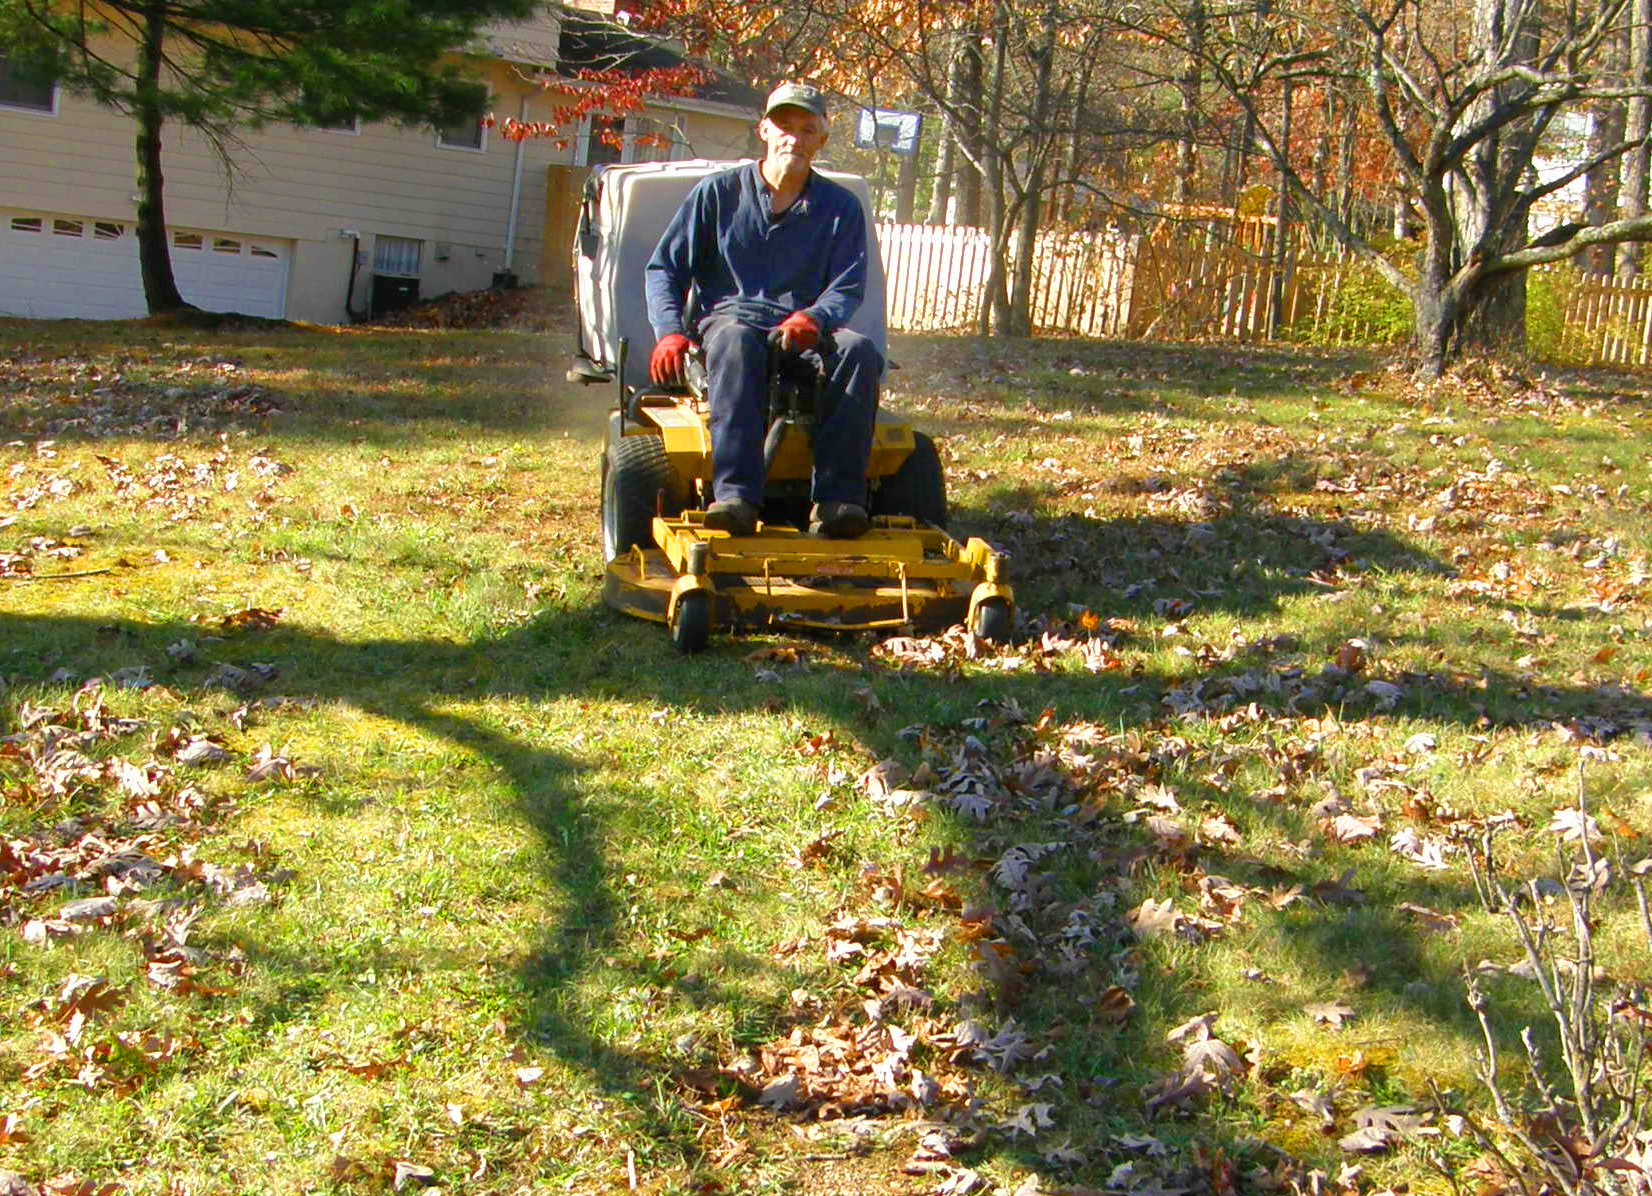 The maneuverability of the Walker Mower